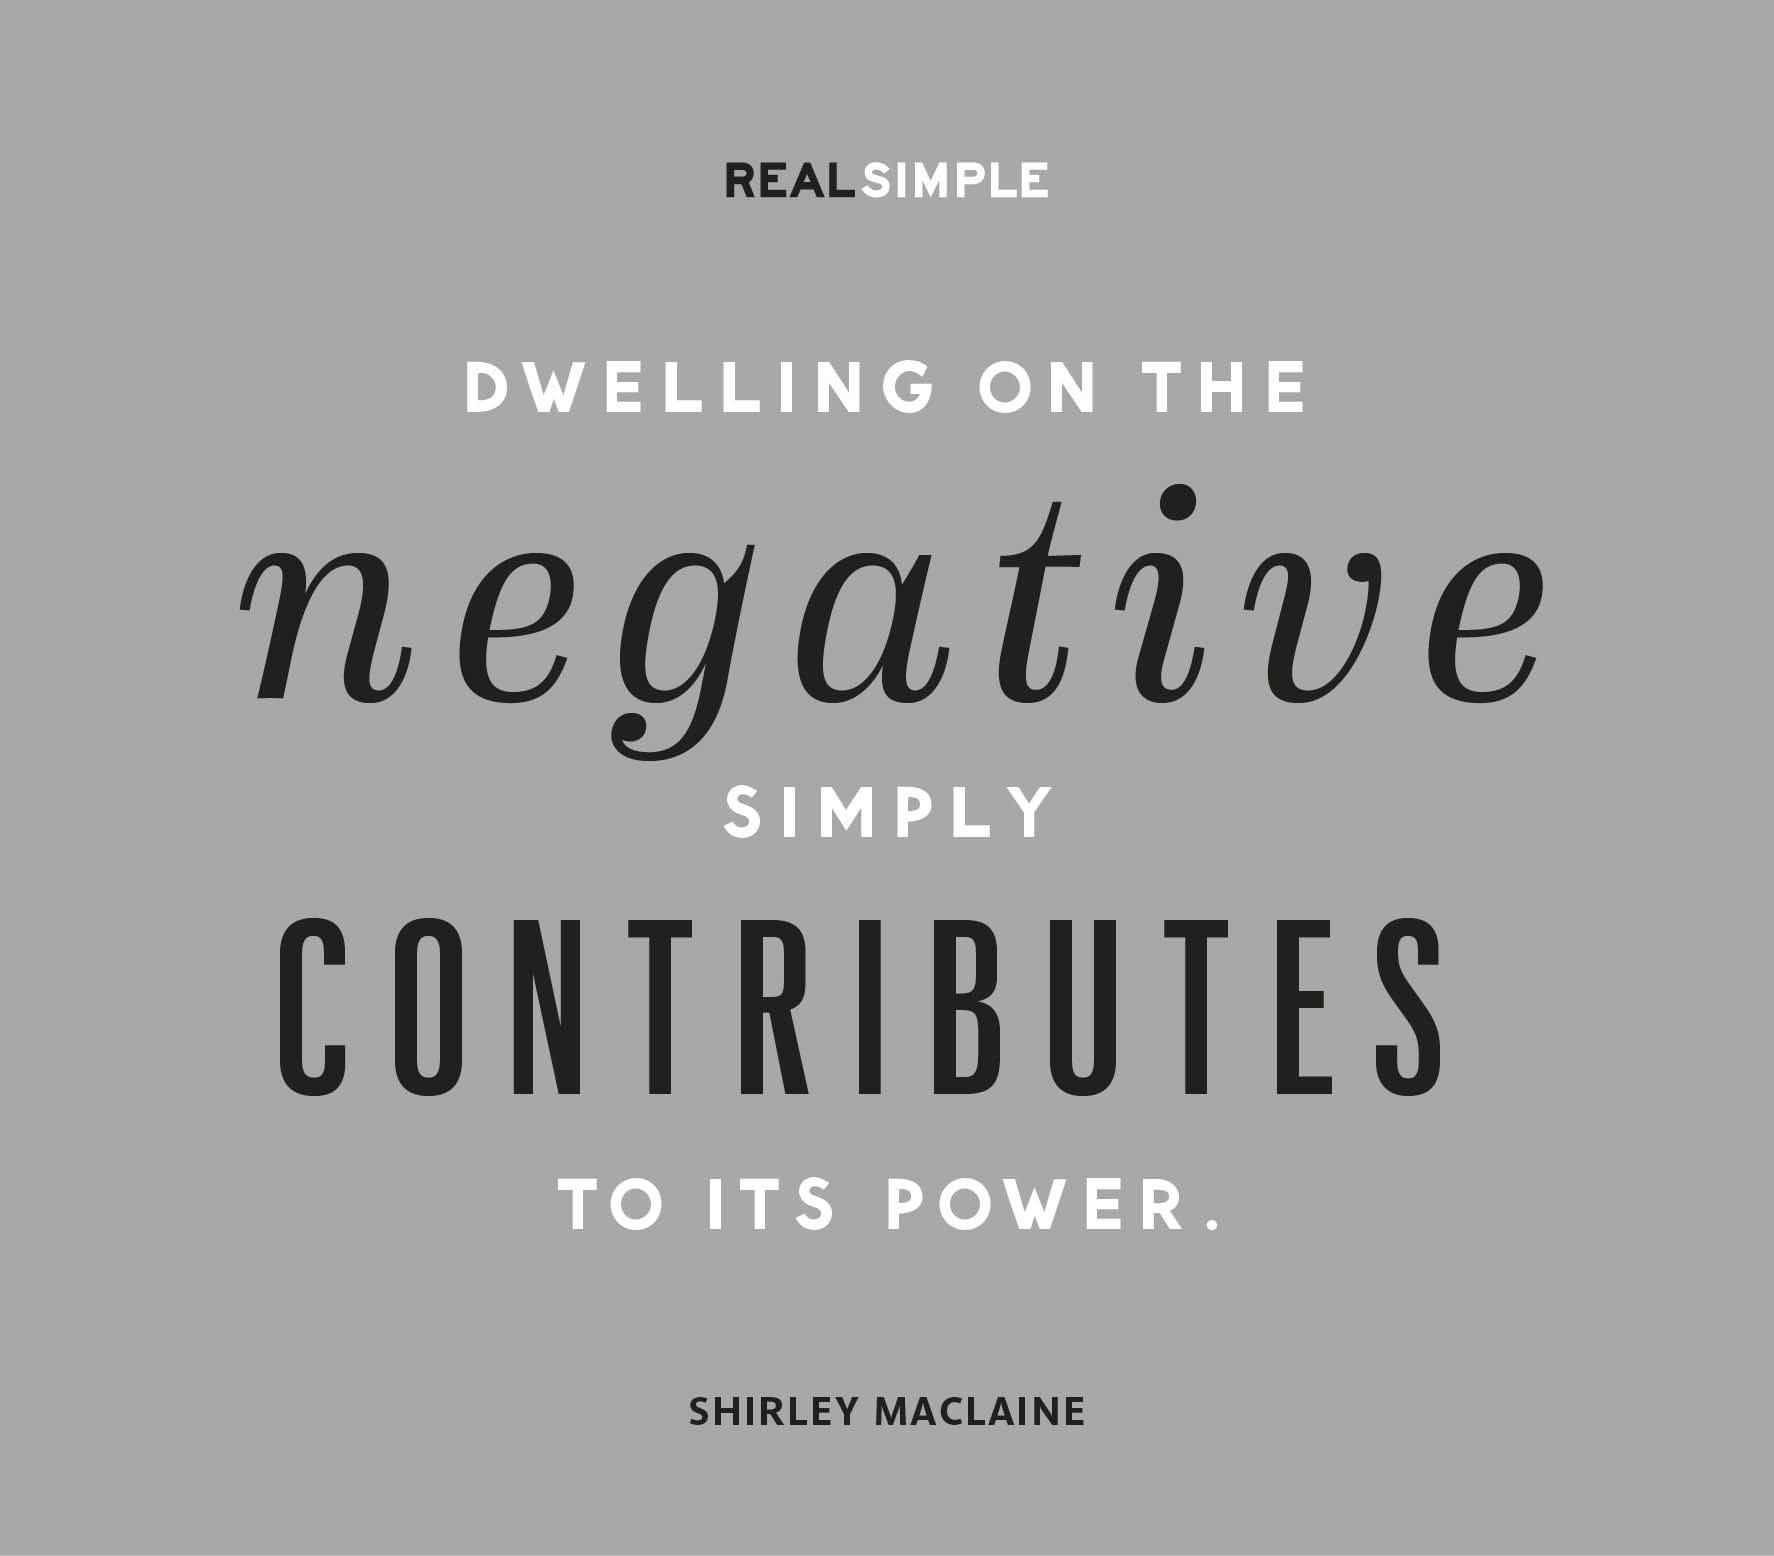 Dwelling On The Negative Simply Contirbutes To Its Power